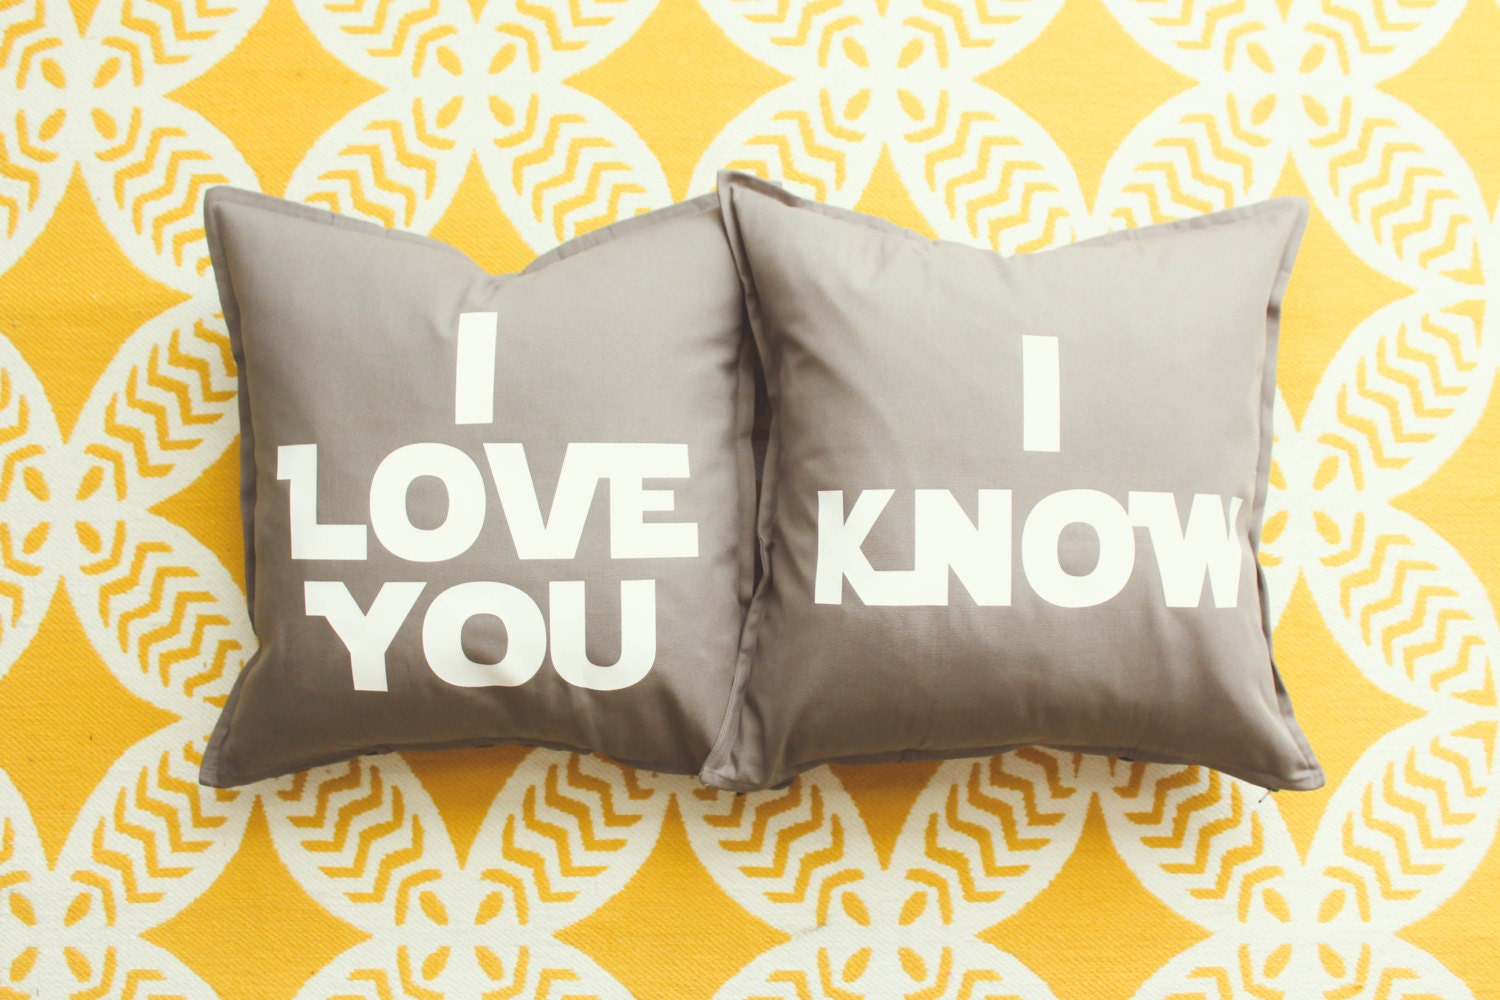 Star Wars I Love You Know Pillow Cover Set